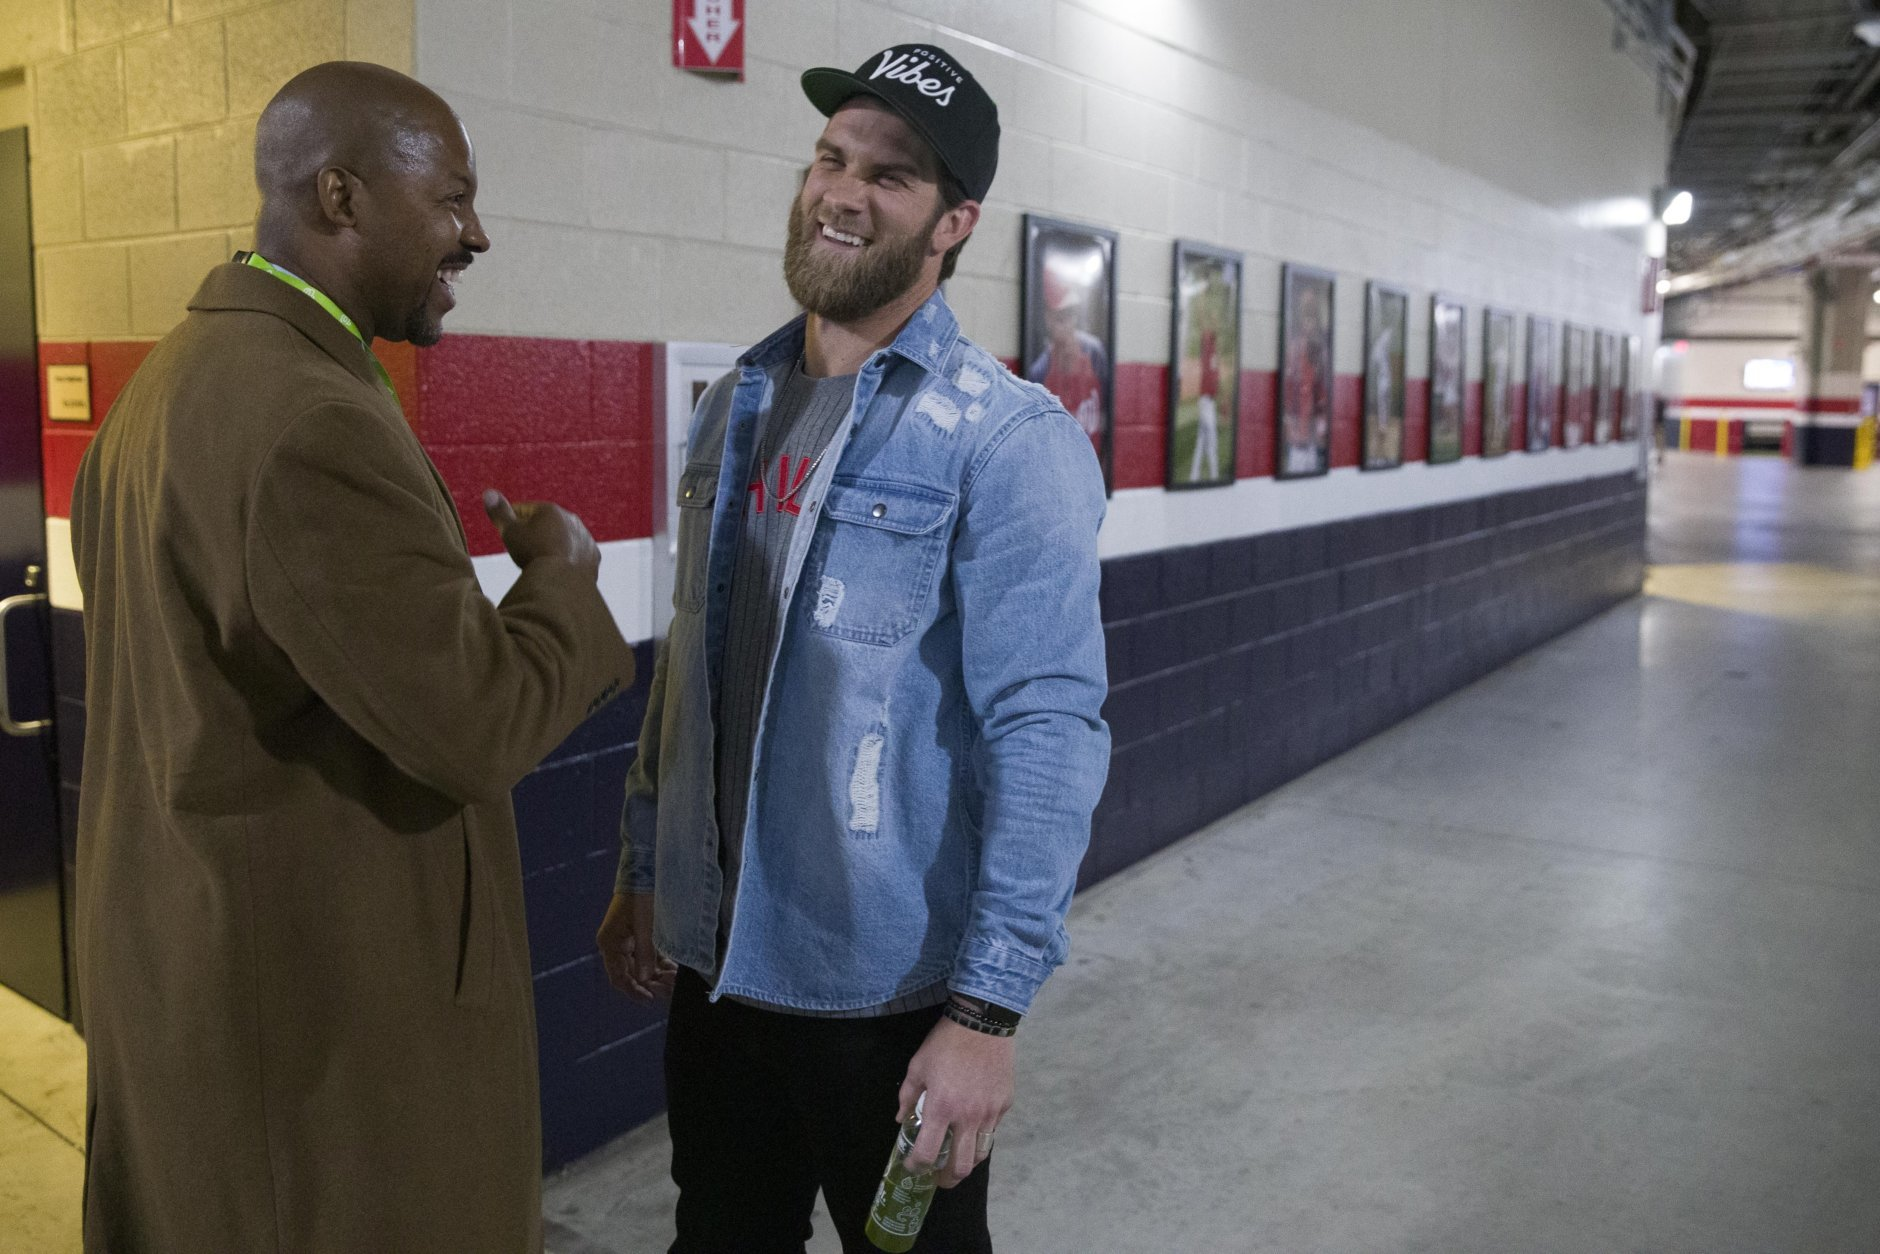 MASN baseball analyst and former Houston Astros manager Bo Porter, left, talks with Philadelphia Phillies' Bryce Harper after a news conference before a baseball game against the Washington Nationals at Nationals Park, Tuesday, April 2, 2019, in Washington. (AP Photo/Alex Brandon)